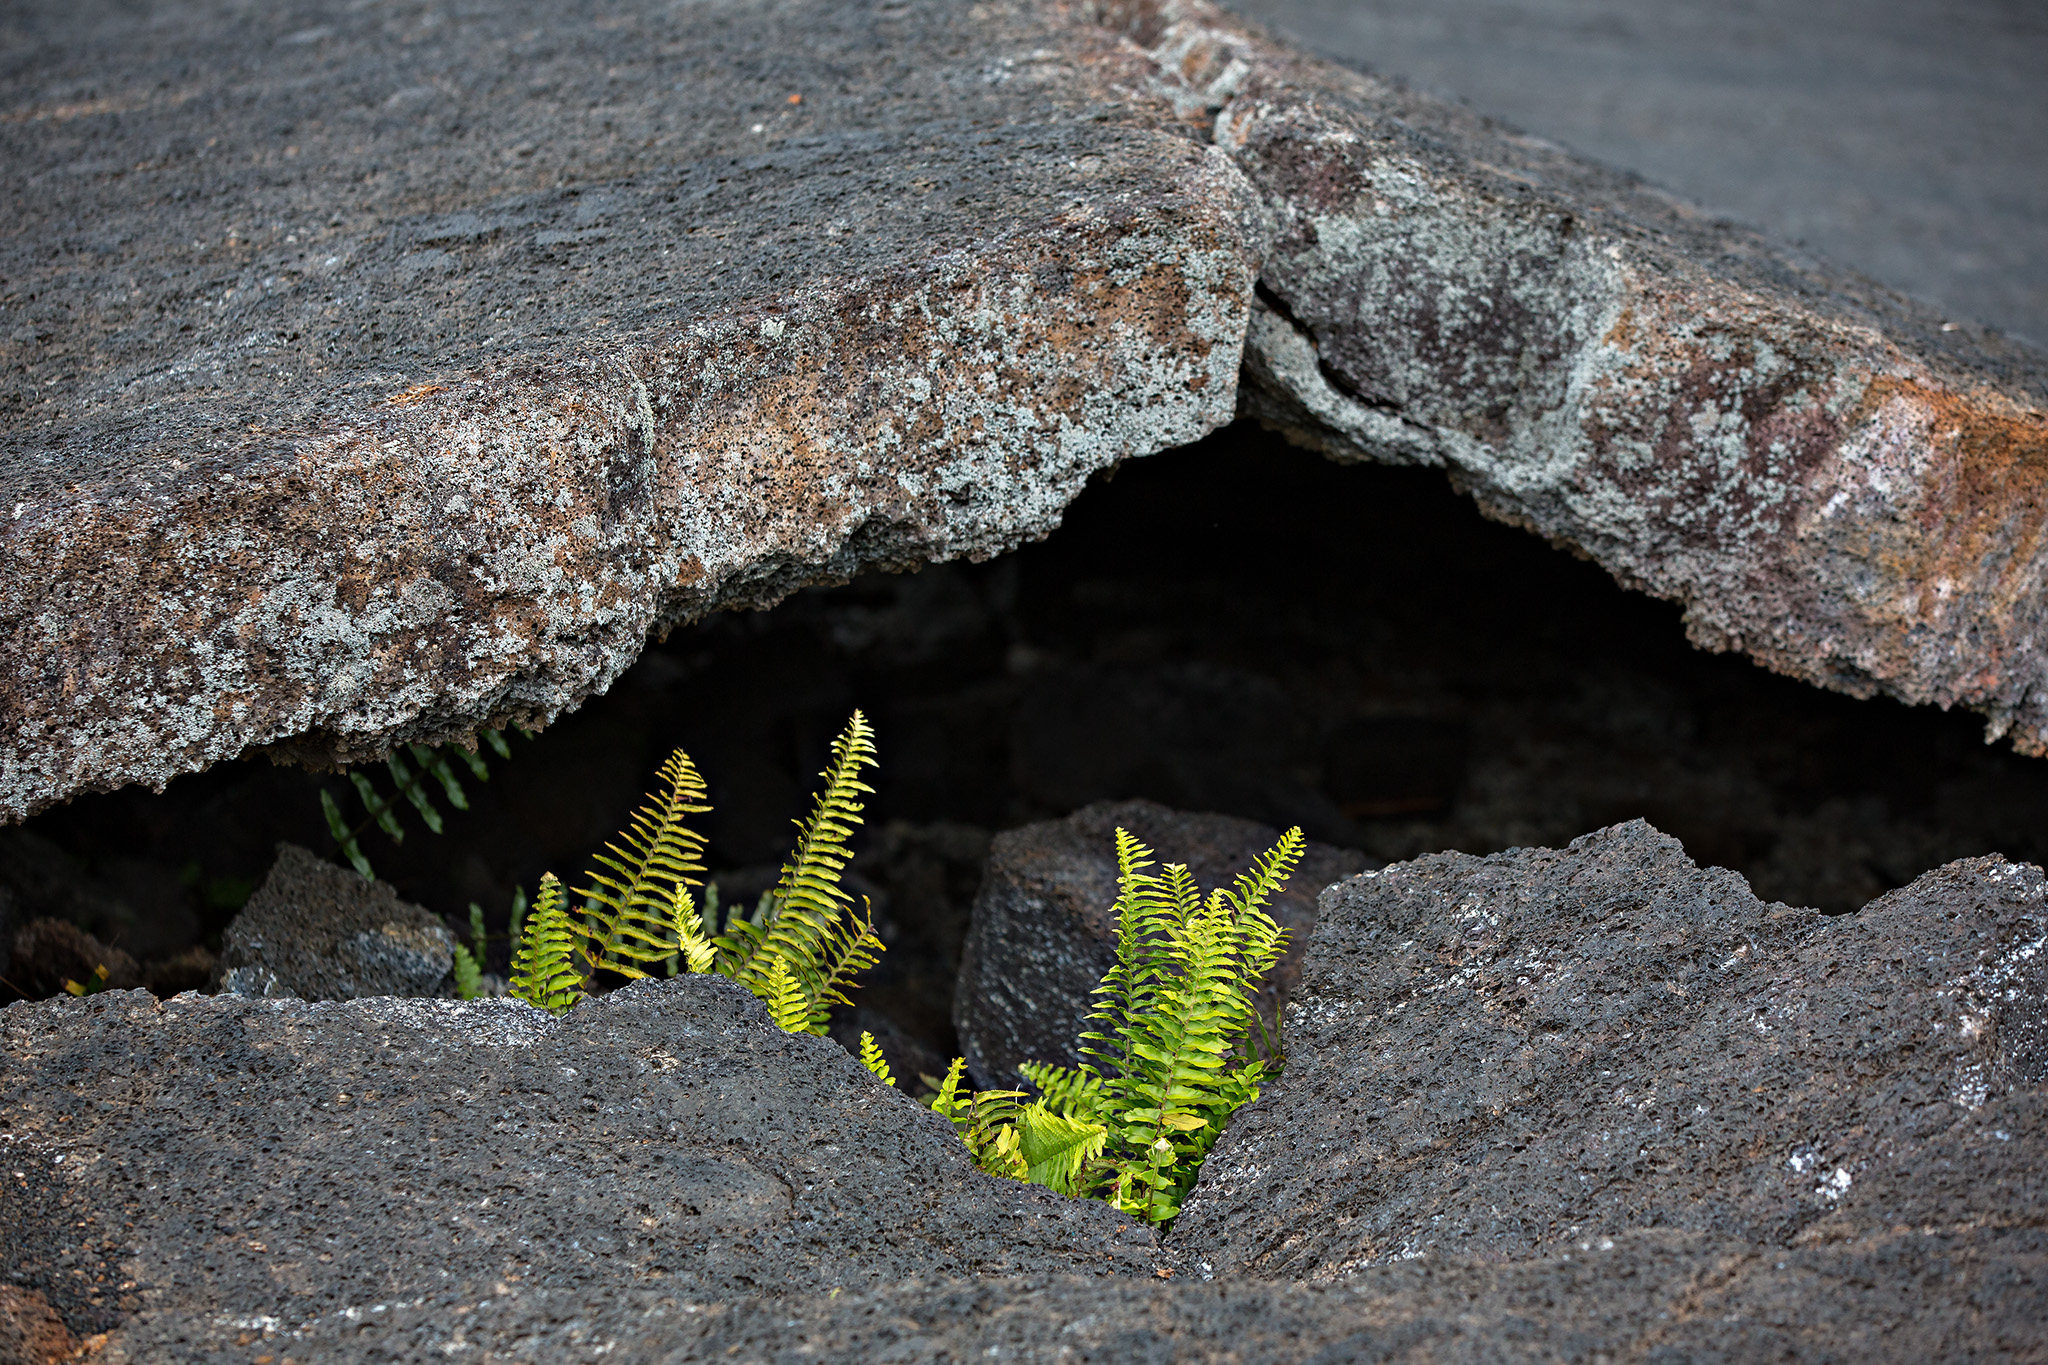 Polypodium pellucidum var. vulcanicum under folded lava rock